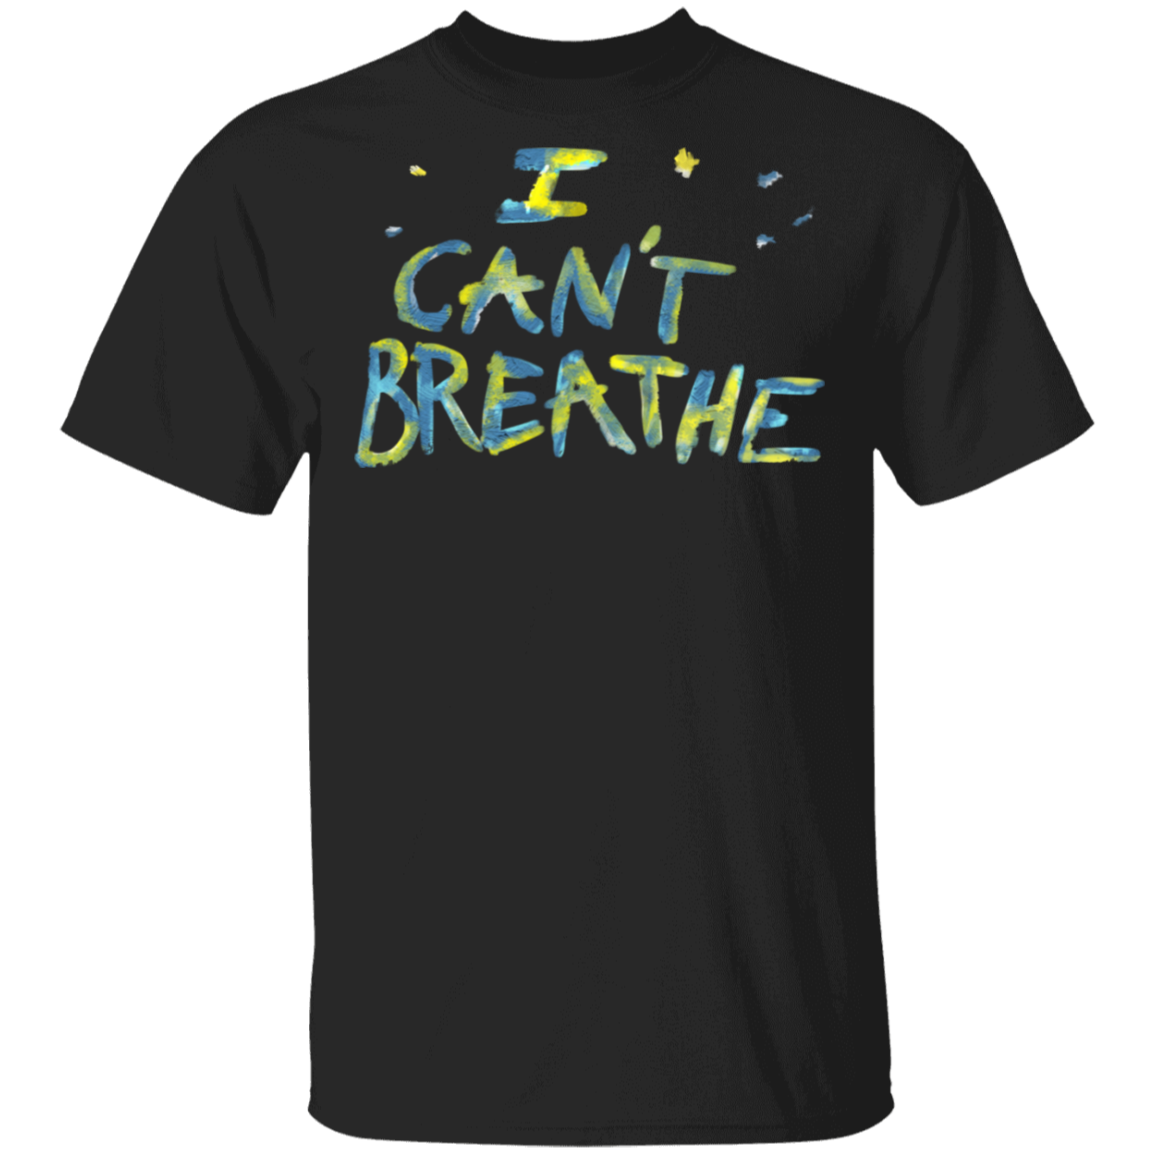 George Floyd I Can't Breathe T-Shirt - Justice For Big Floyd Shirt Protest